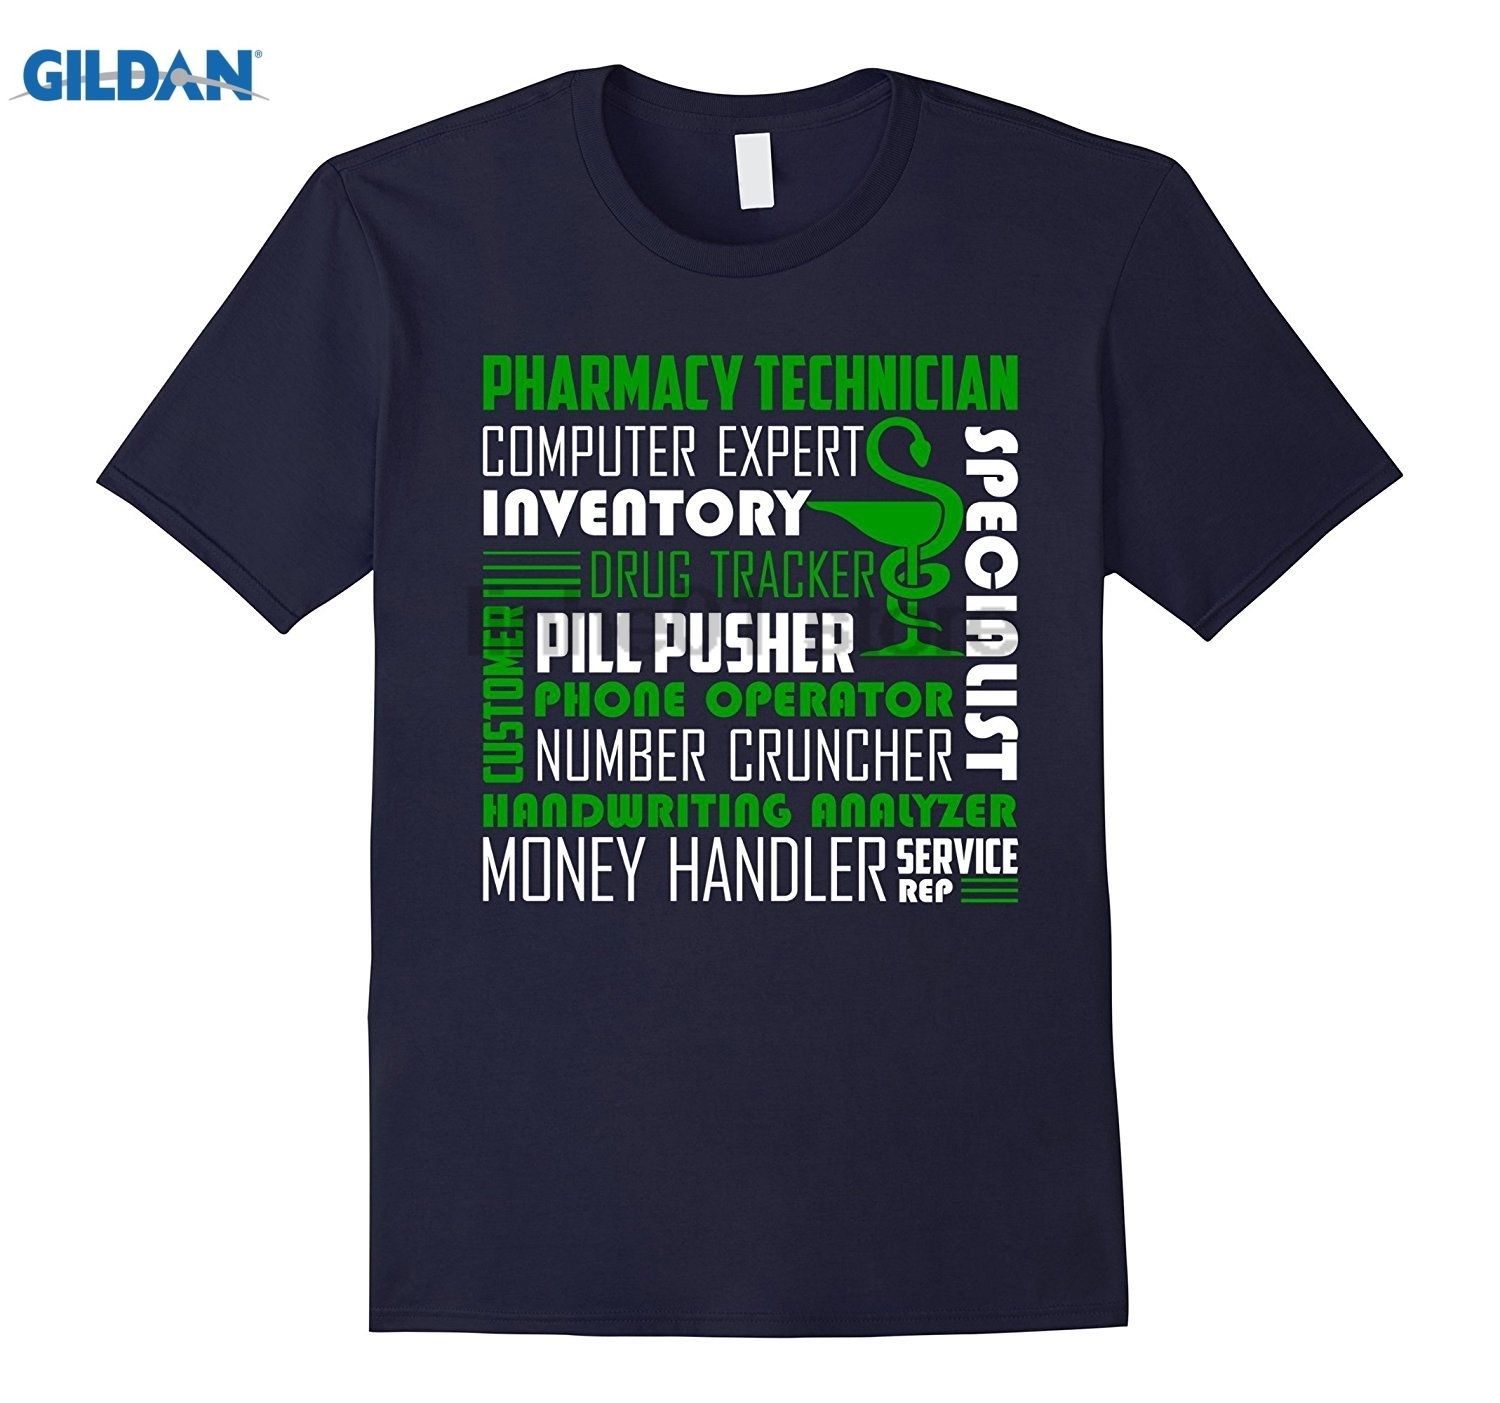 GILDAN Pharmacy Technician Shirts - Pharmacy Technician Tshirt Dress female T-shirt